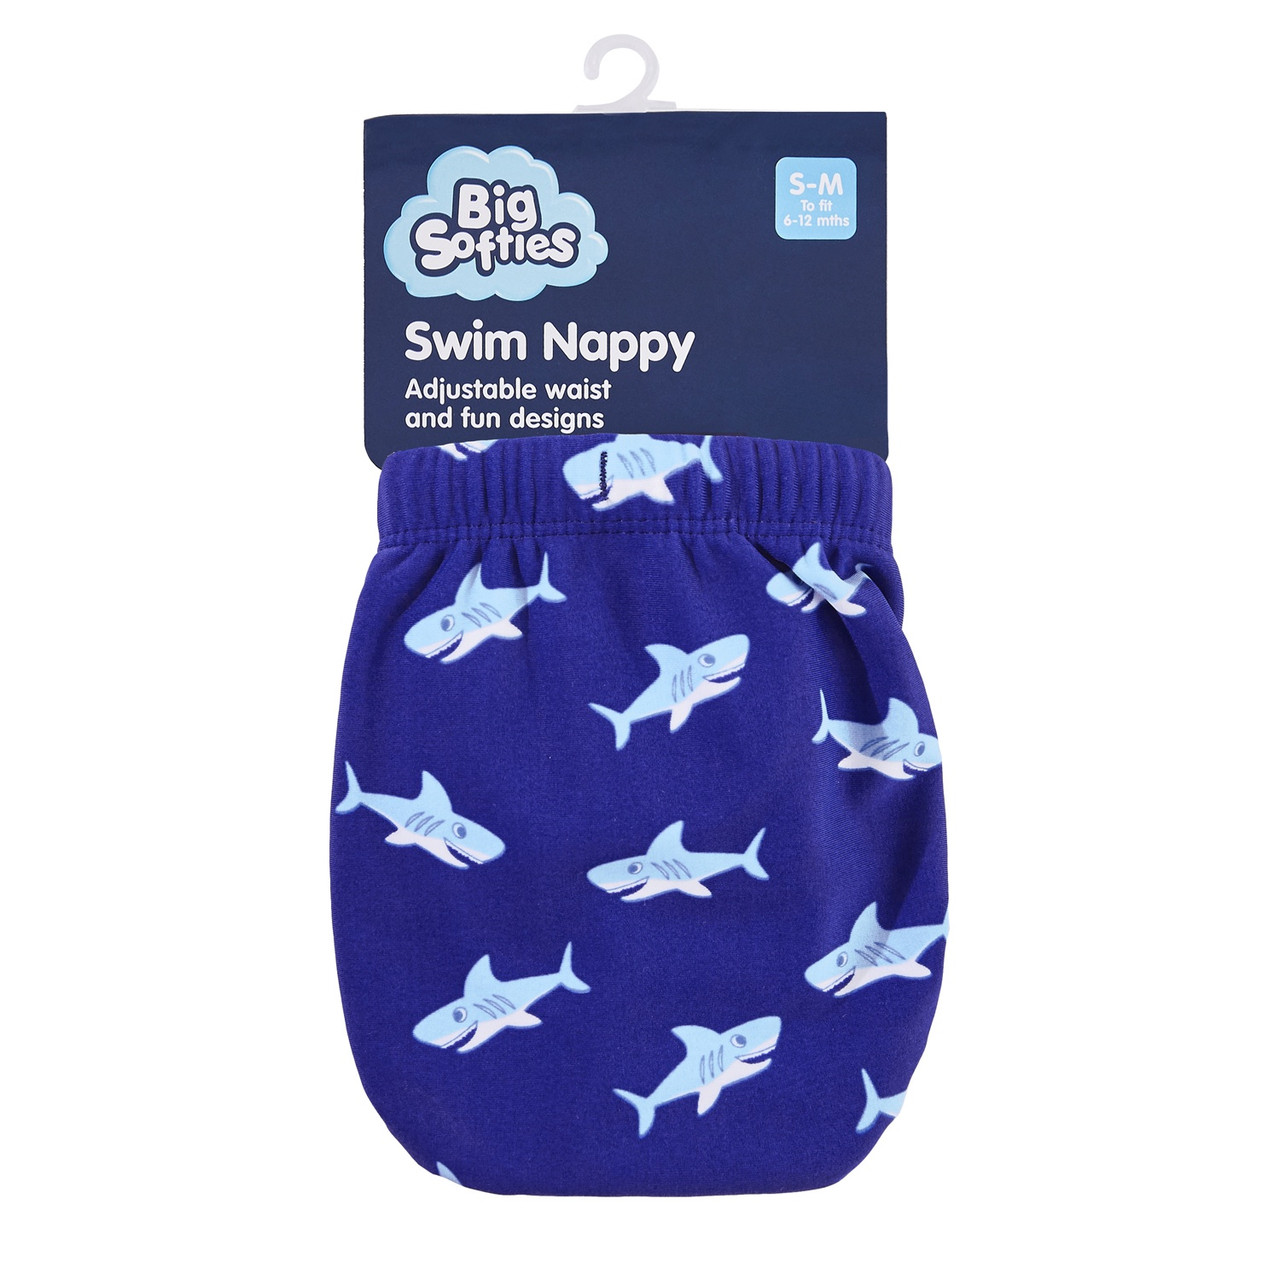 Big Softies Swim Nappy S-M BOY at Baby Barn Discounts Easy removal Little Swimmers disposable swimpants are designed not to swell the water unlike regular nappies.